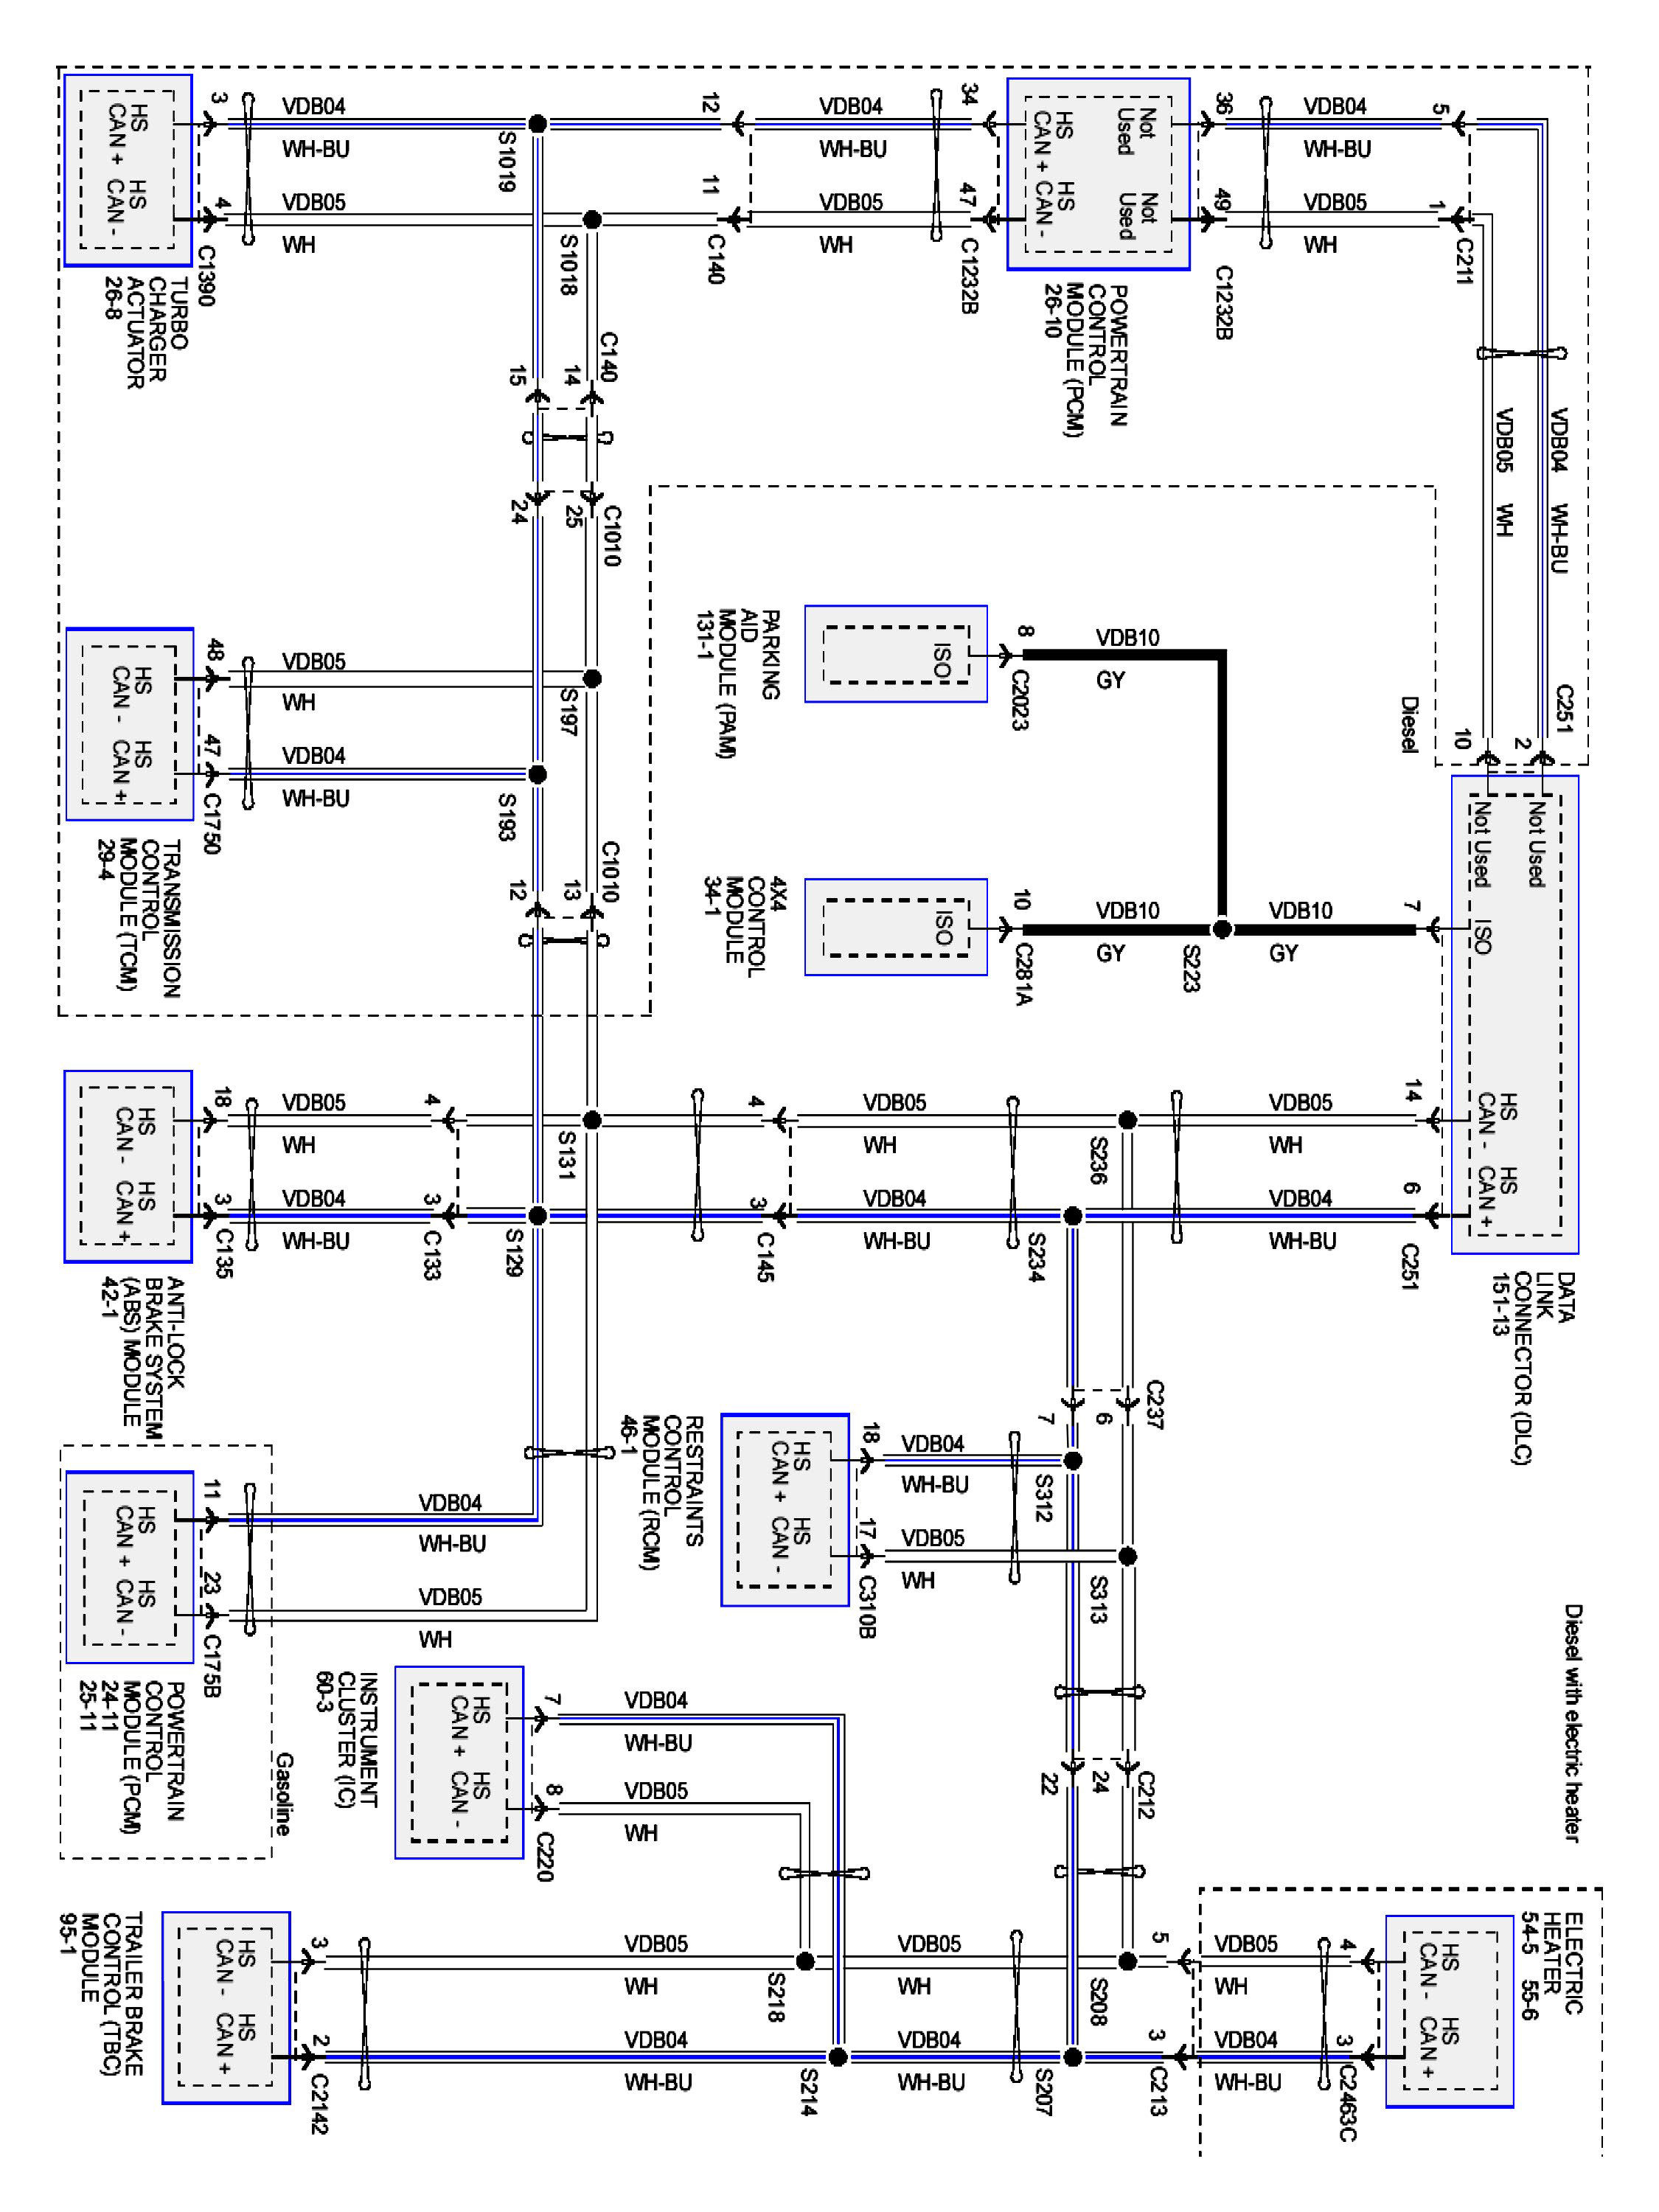 Wiring Diagram 1998 Ford Pats System 2005 Ford Escape Fuse Box Diagram